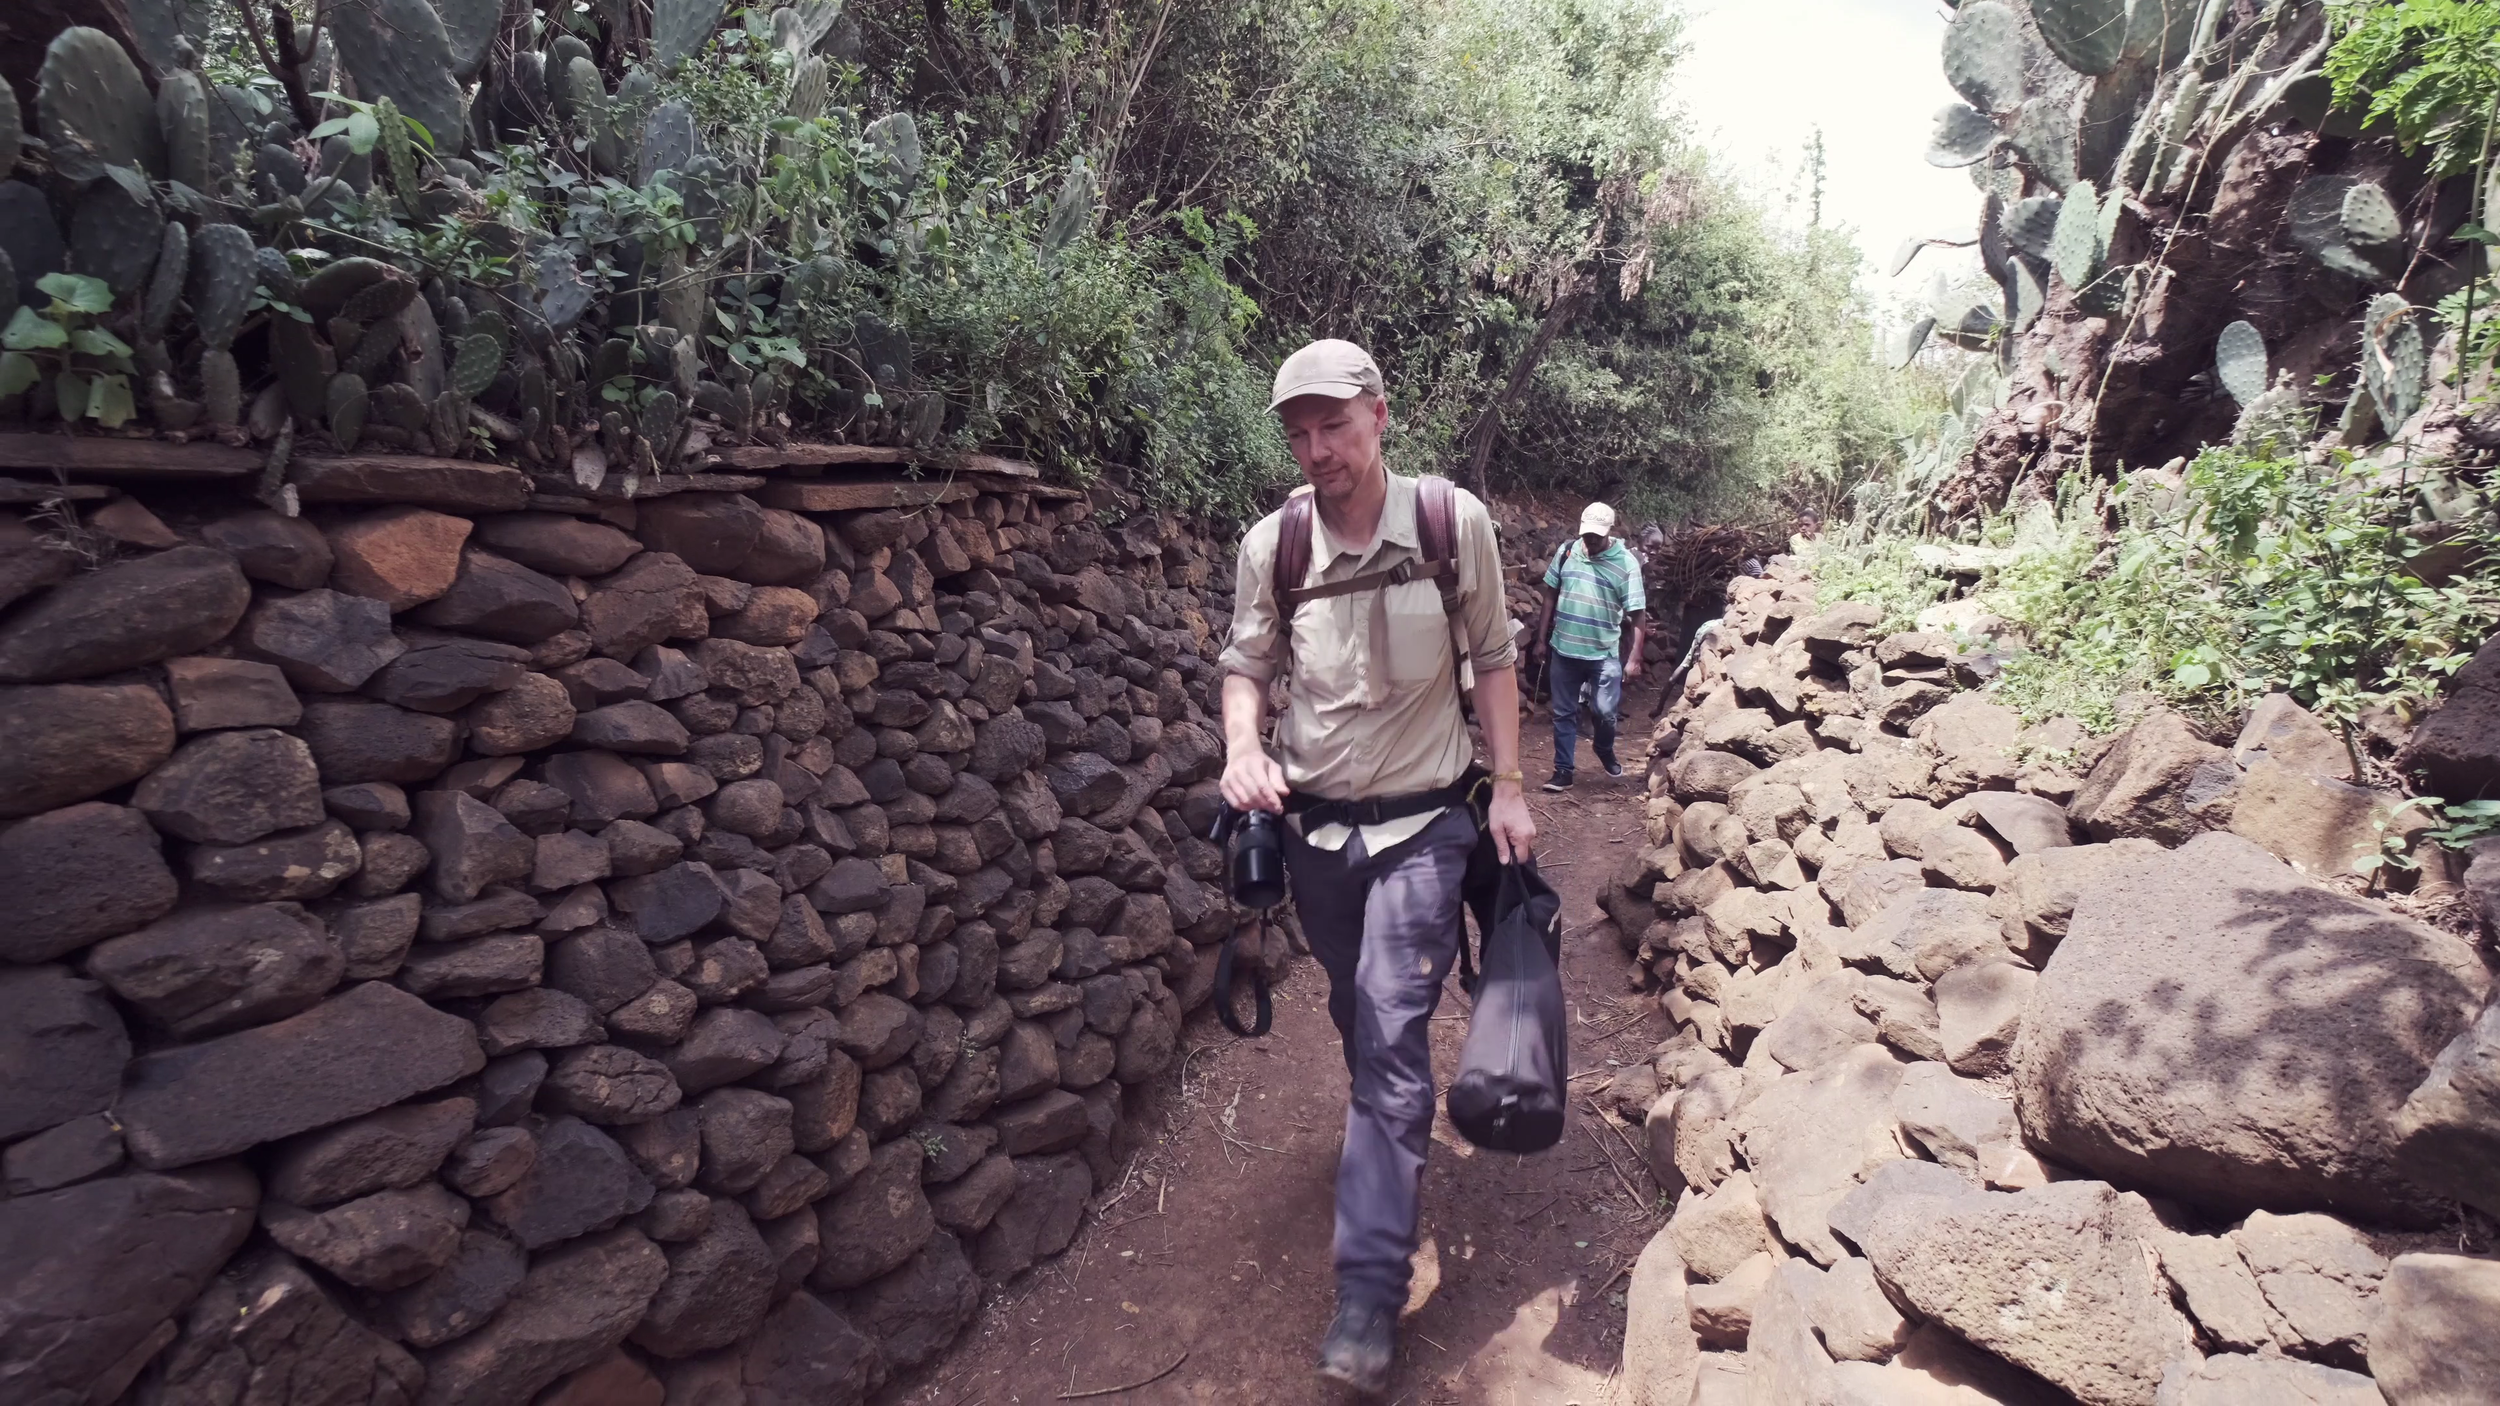 On our way to the Konso village...